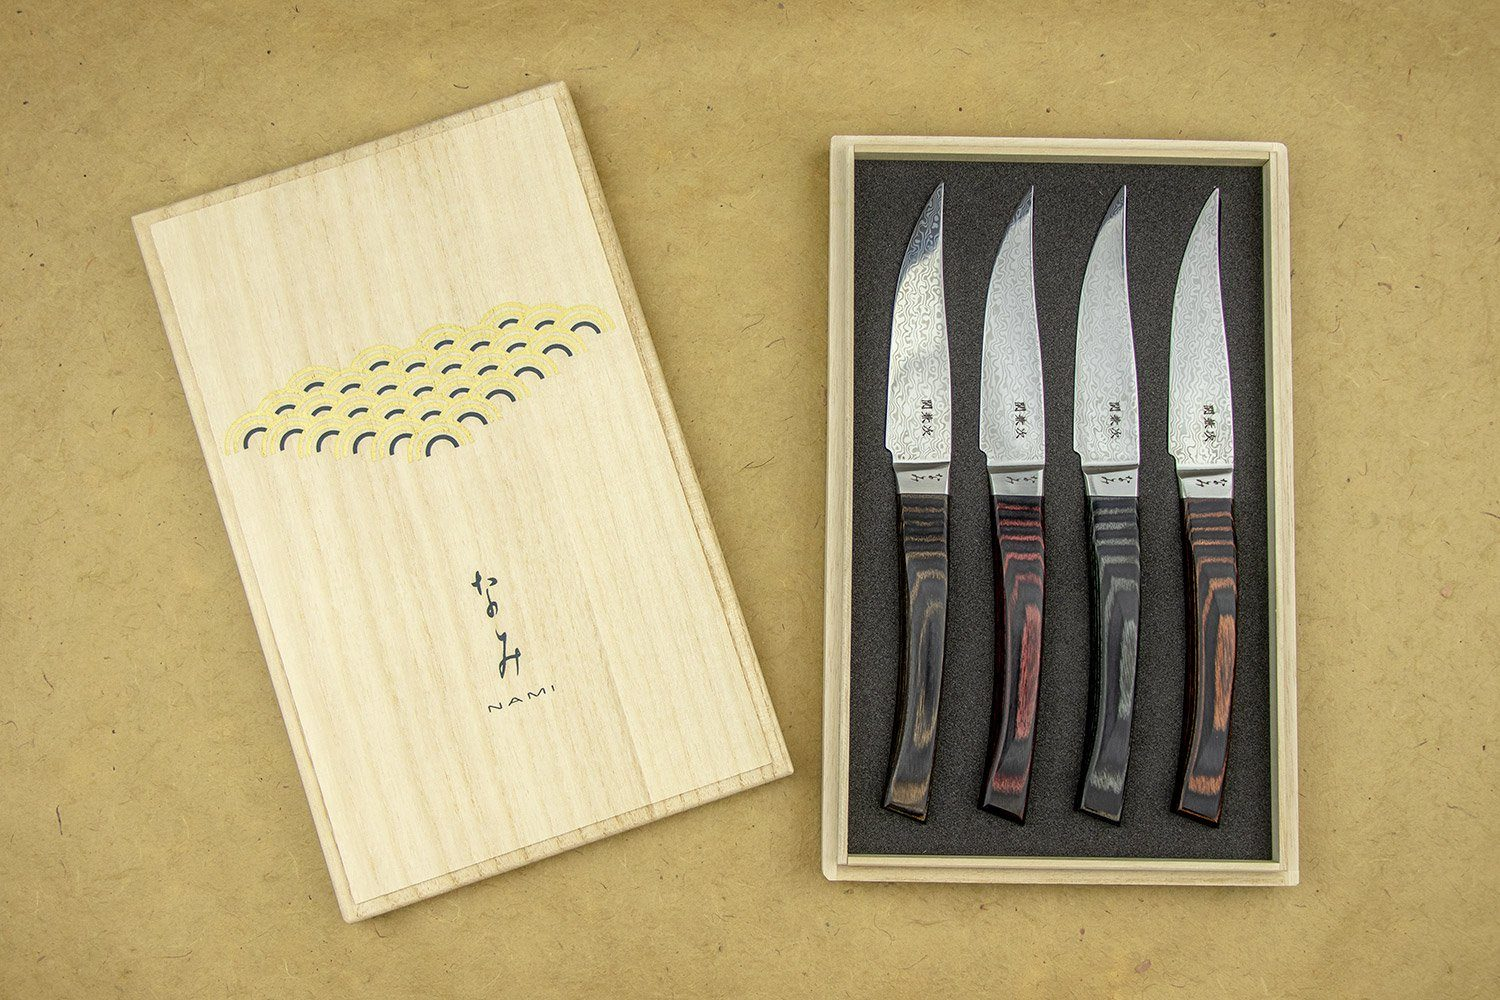 Seki Kanetsugu 4 piece Steak Knife set